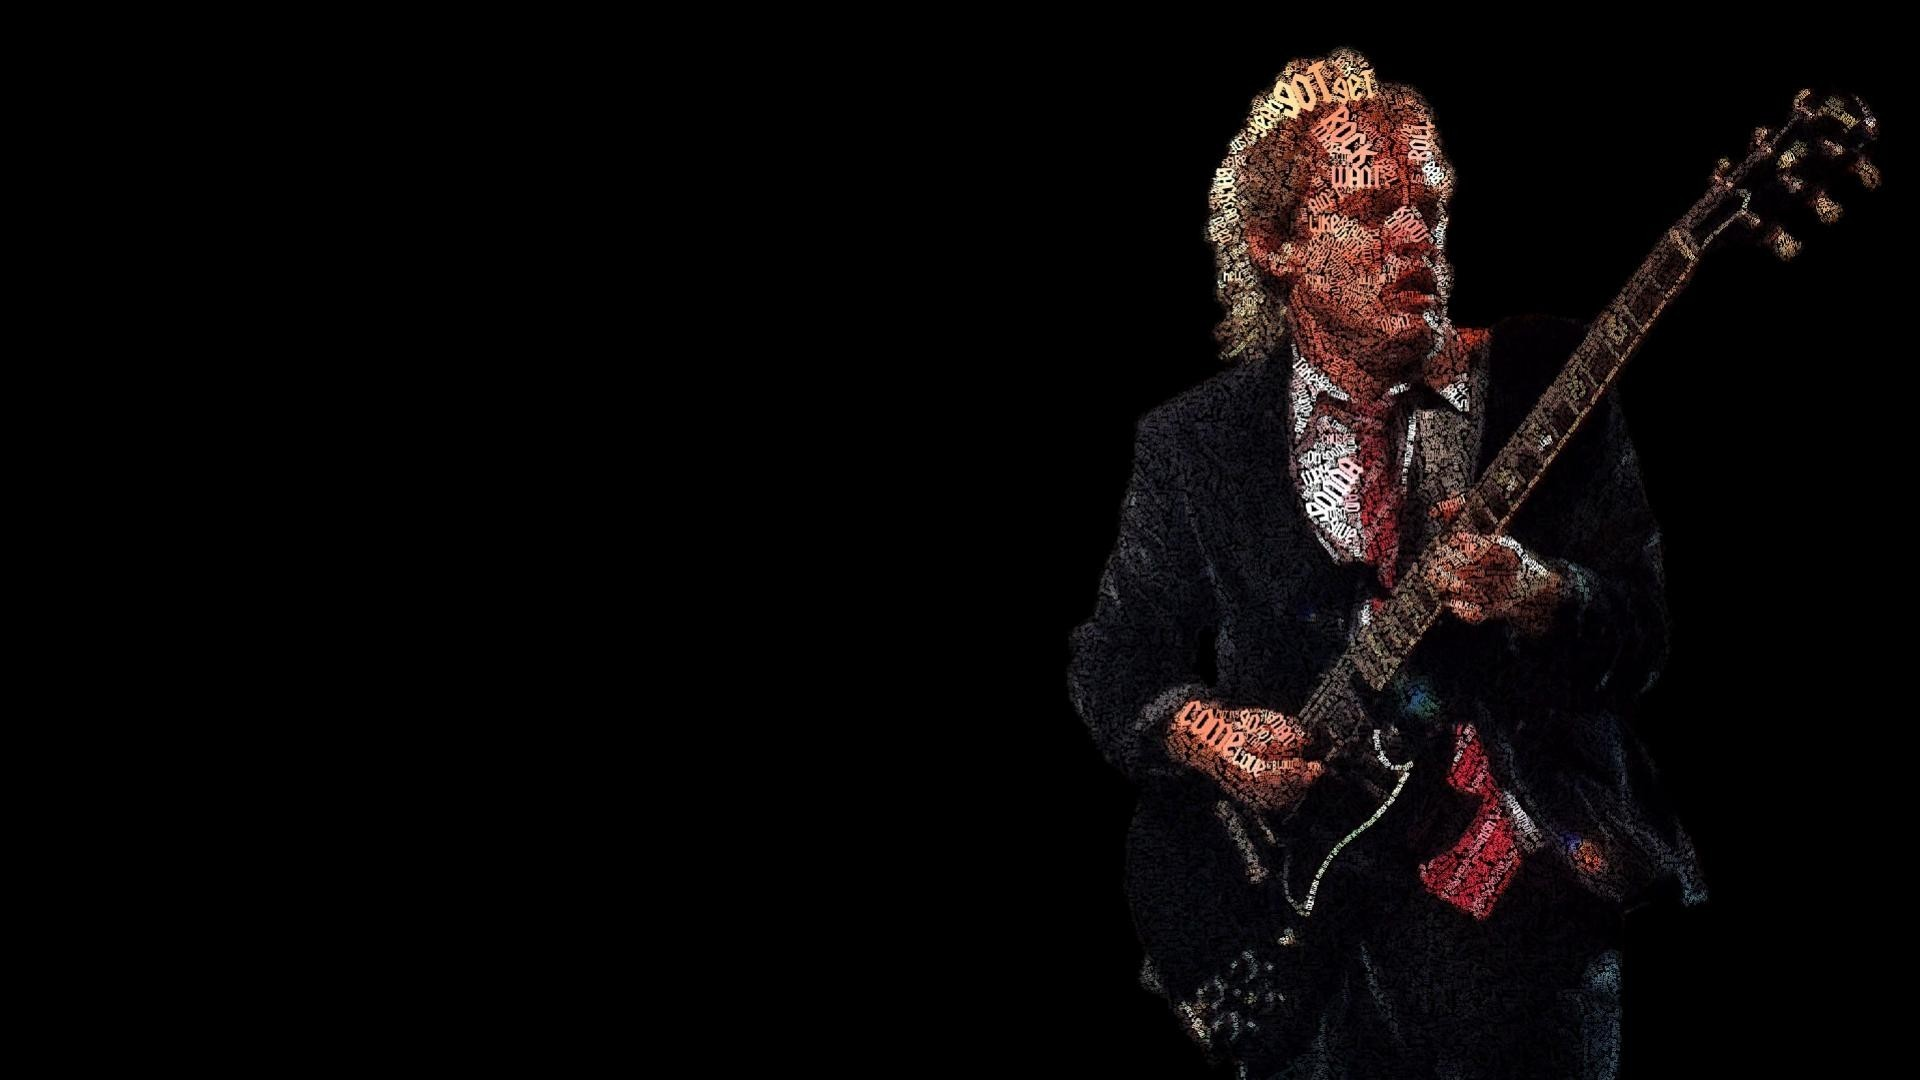 1920x1080 ACDC Angus Young